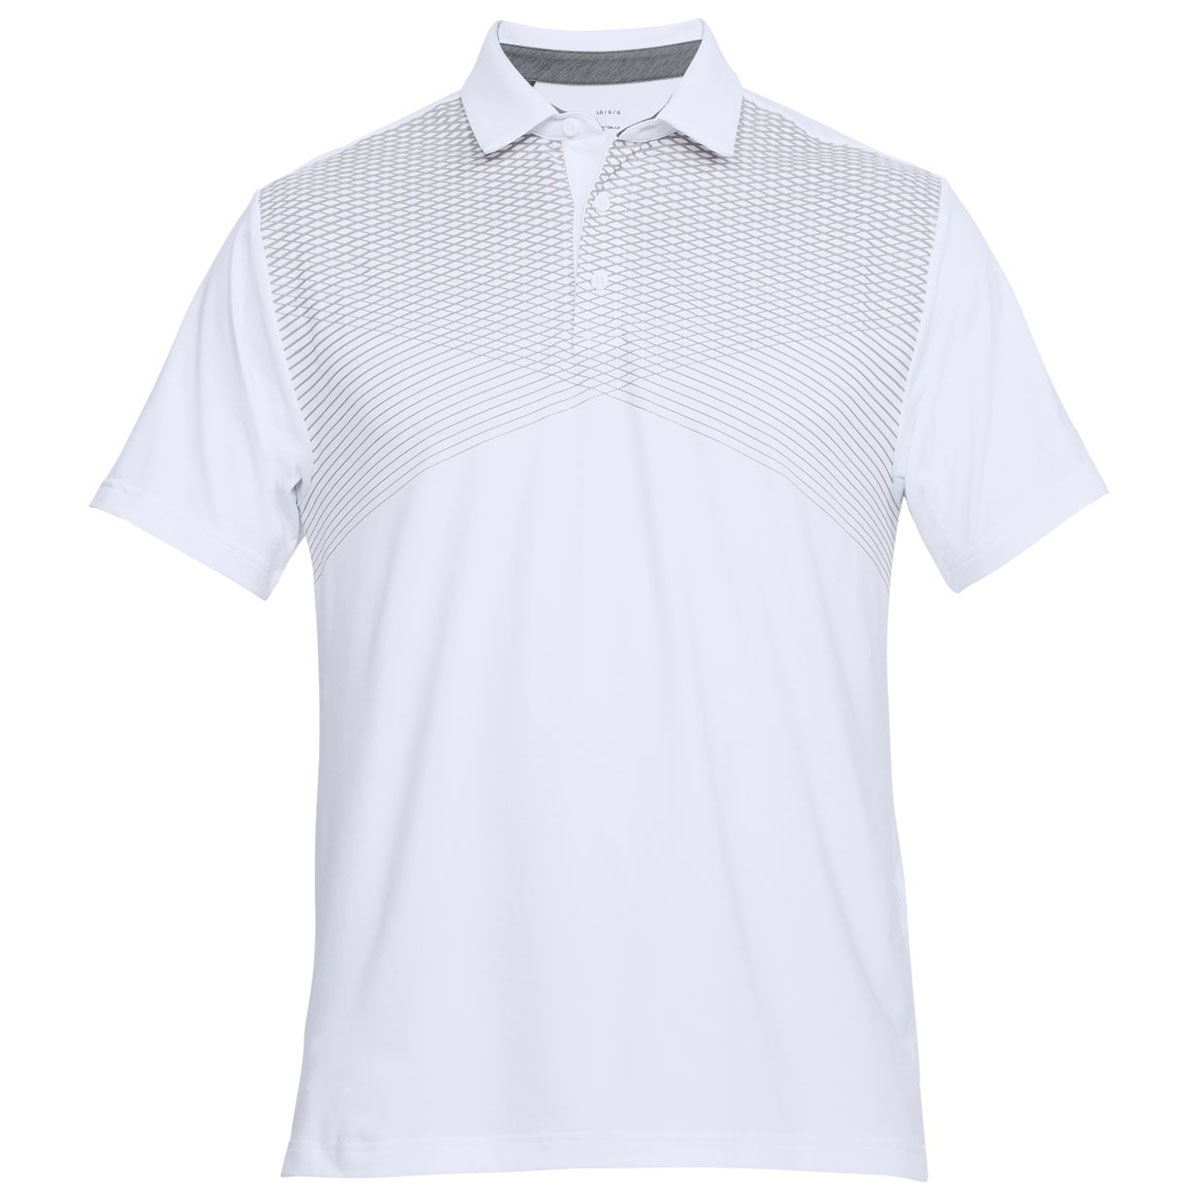 Under-Armour-Mens-UA-Playoff-Performance-Golf-Polo-Shirt-42-OFF-RRP thumbnail 62